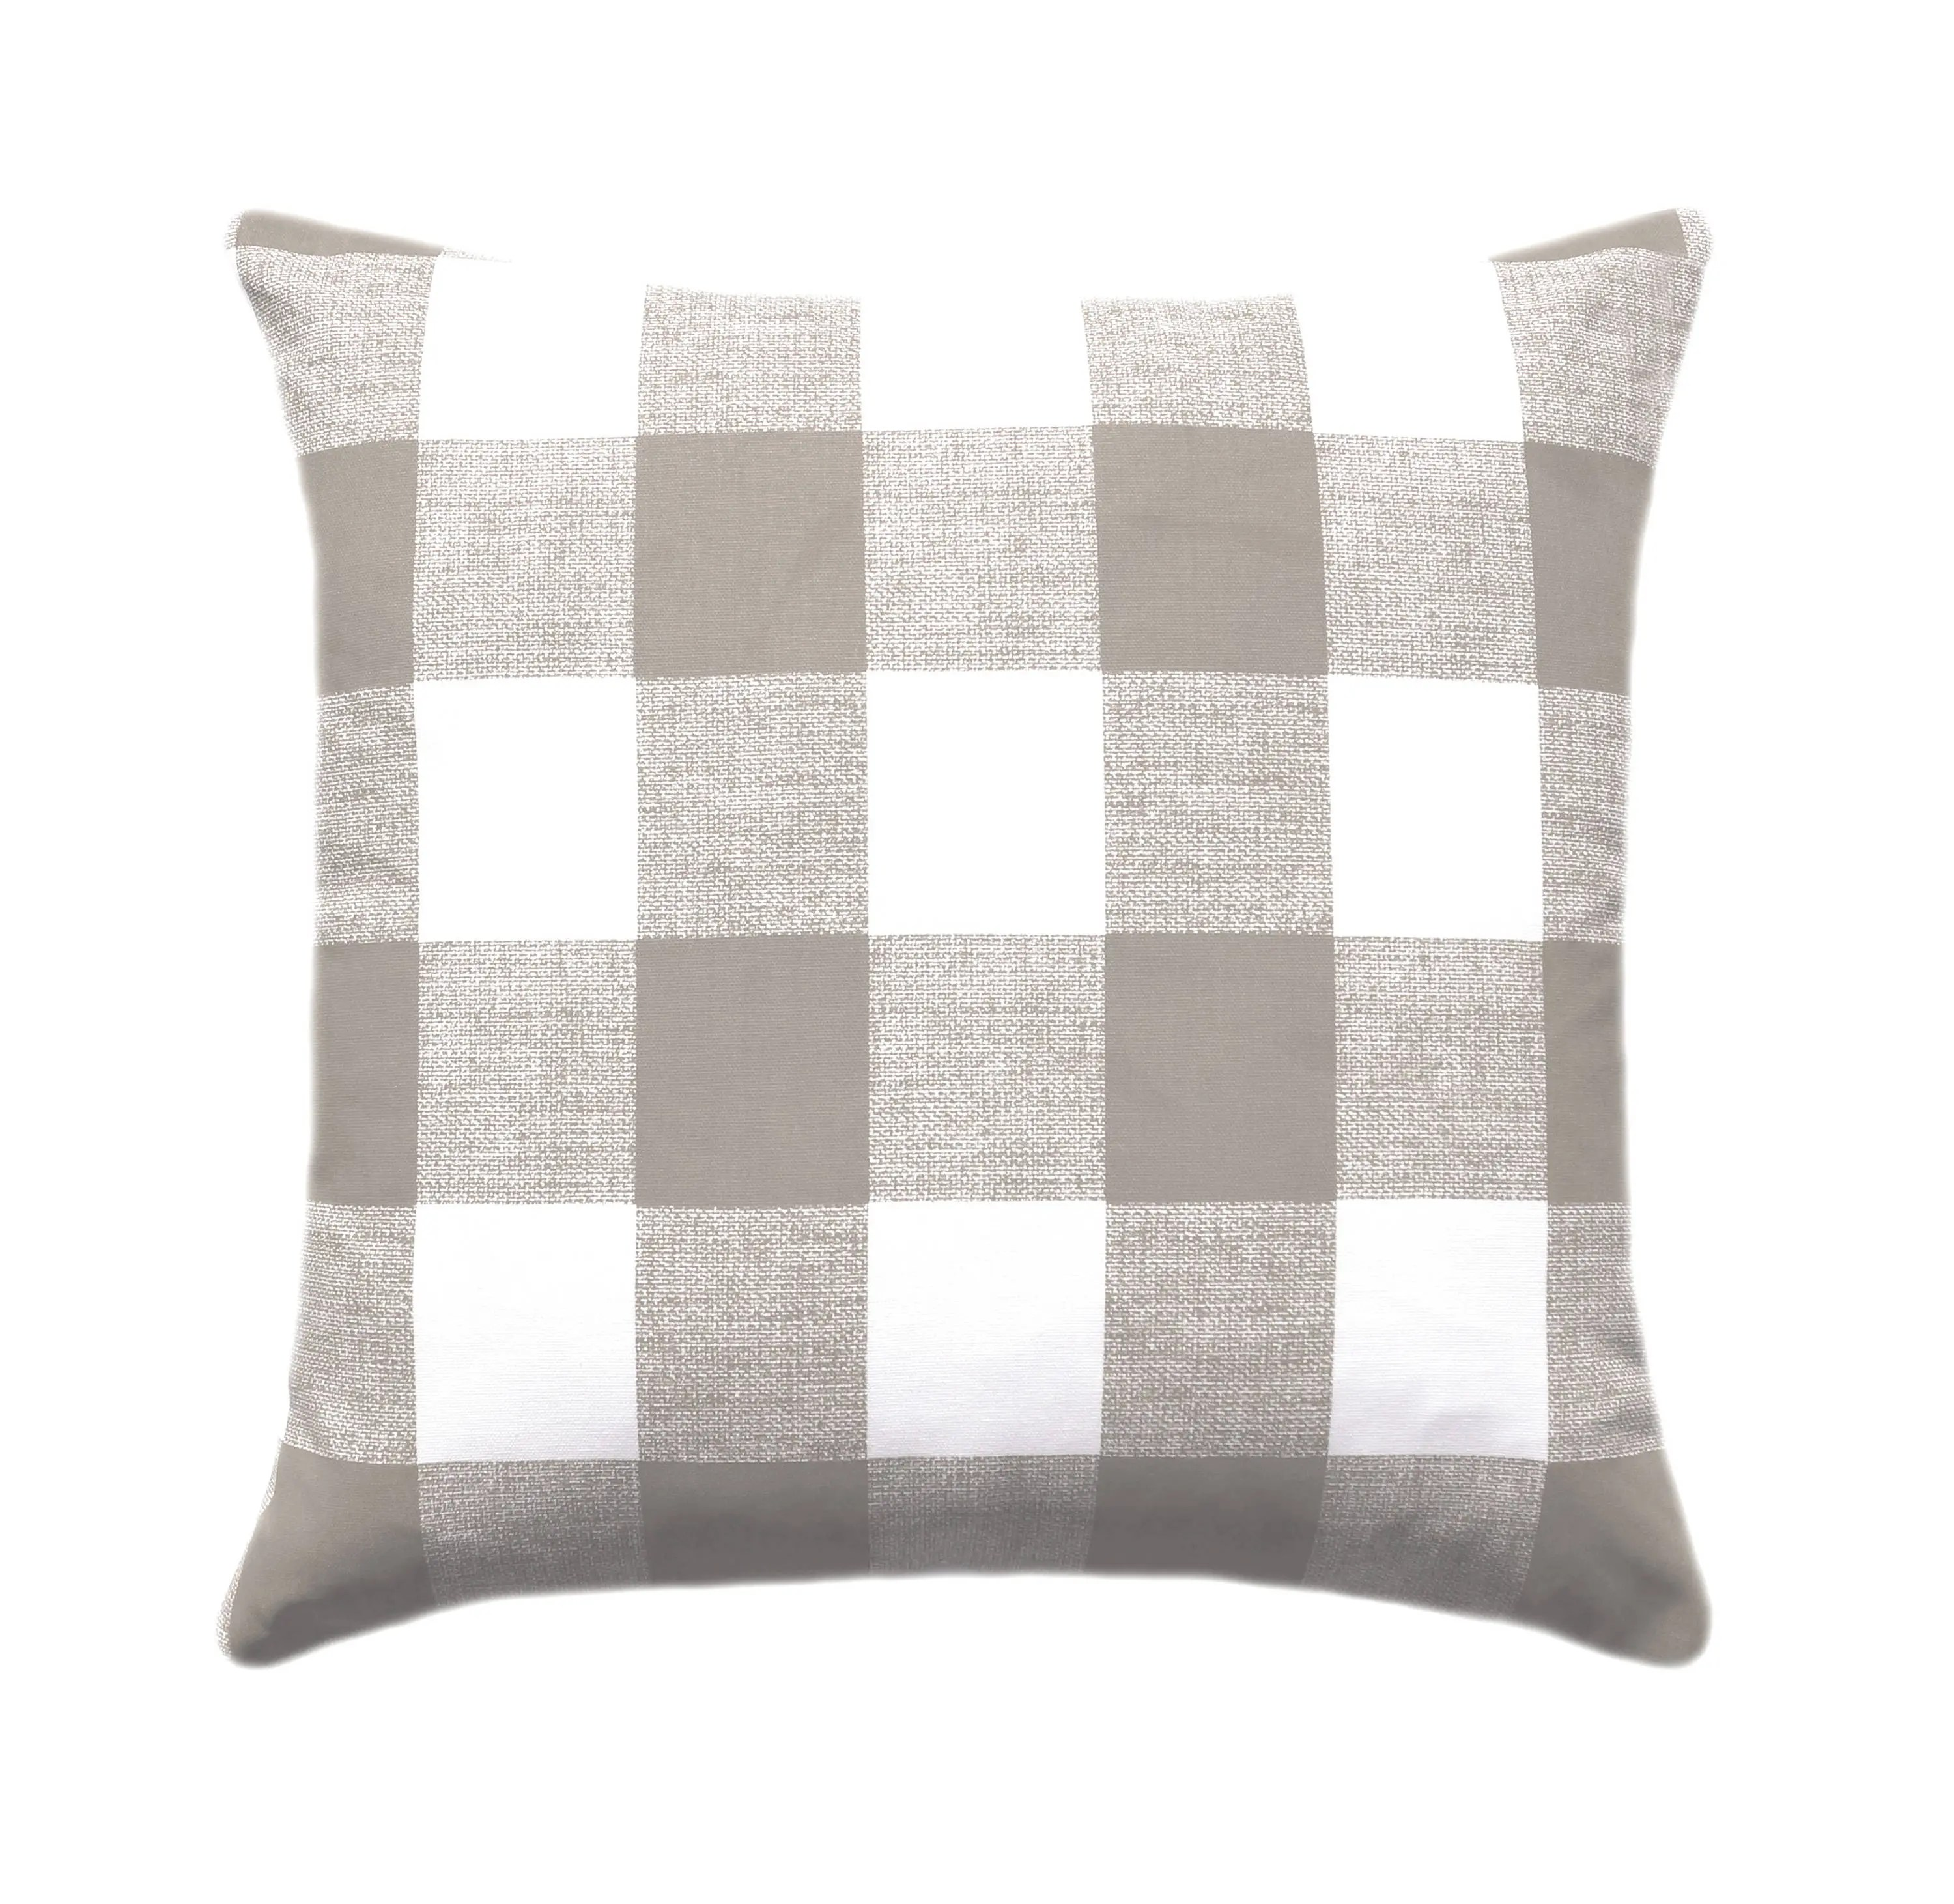 Plaid Taupe Taupe White Buffalo Check Throw Pillows Plaid Taupe Cushion Taupe Ecru White Couch Pillow Tan Decorative Throw Pillow Check Pillow